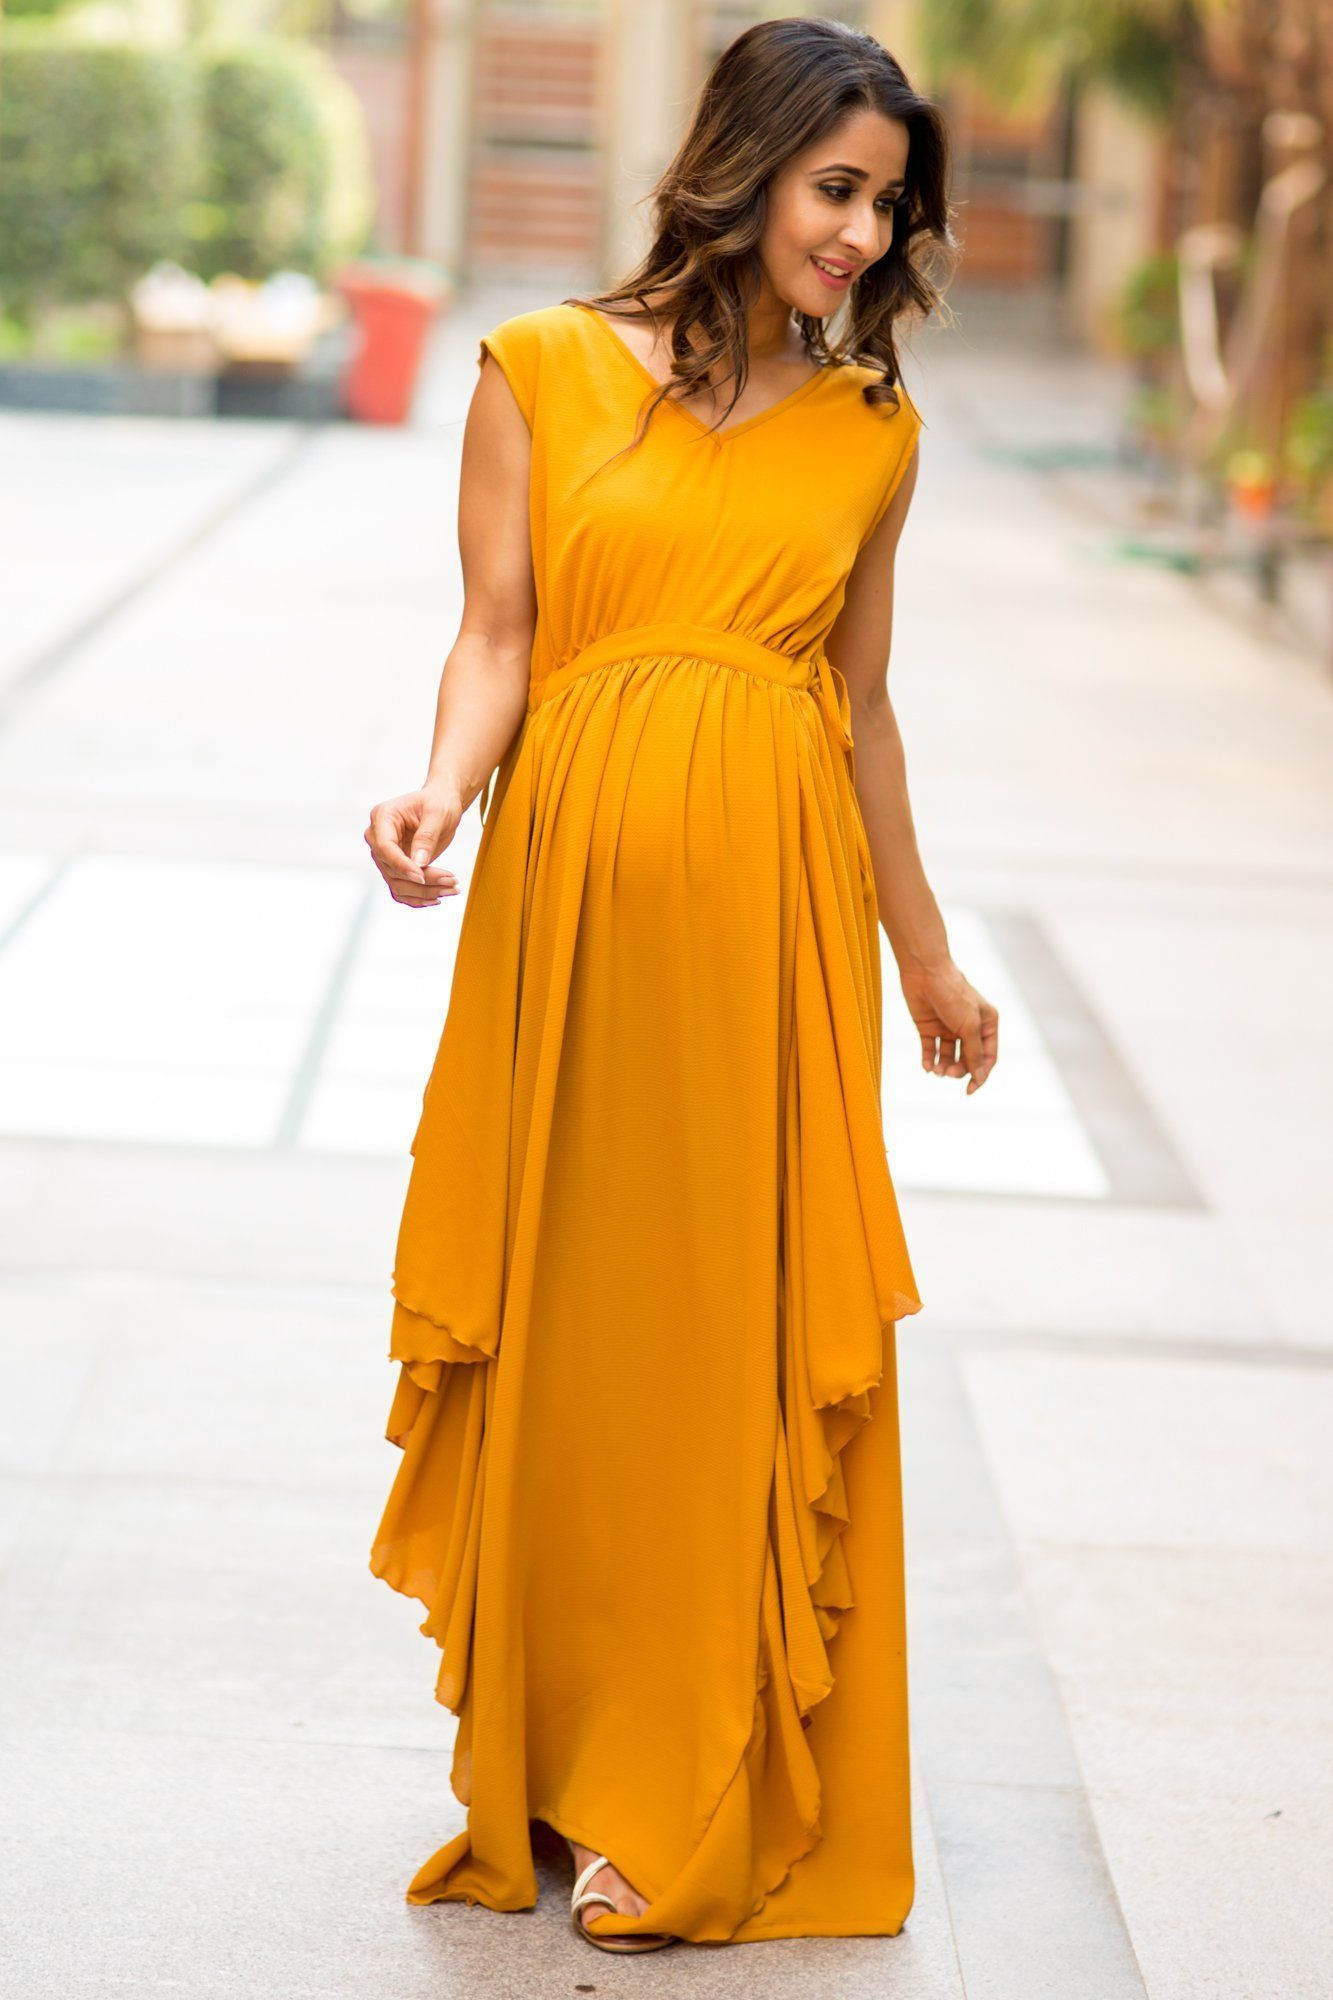 Buy online momzjoy maternity dresses pregnancy wear nursing clothes luxe mustard yellow moss crepe maternity dress ombrellifo Images